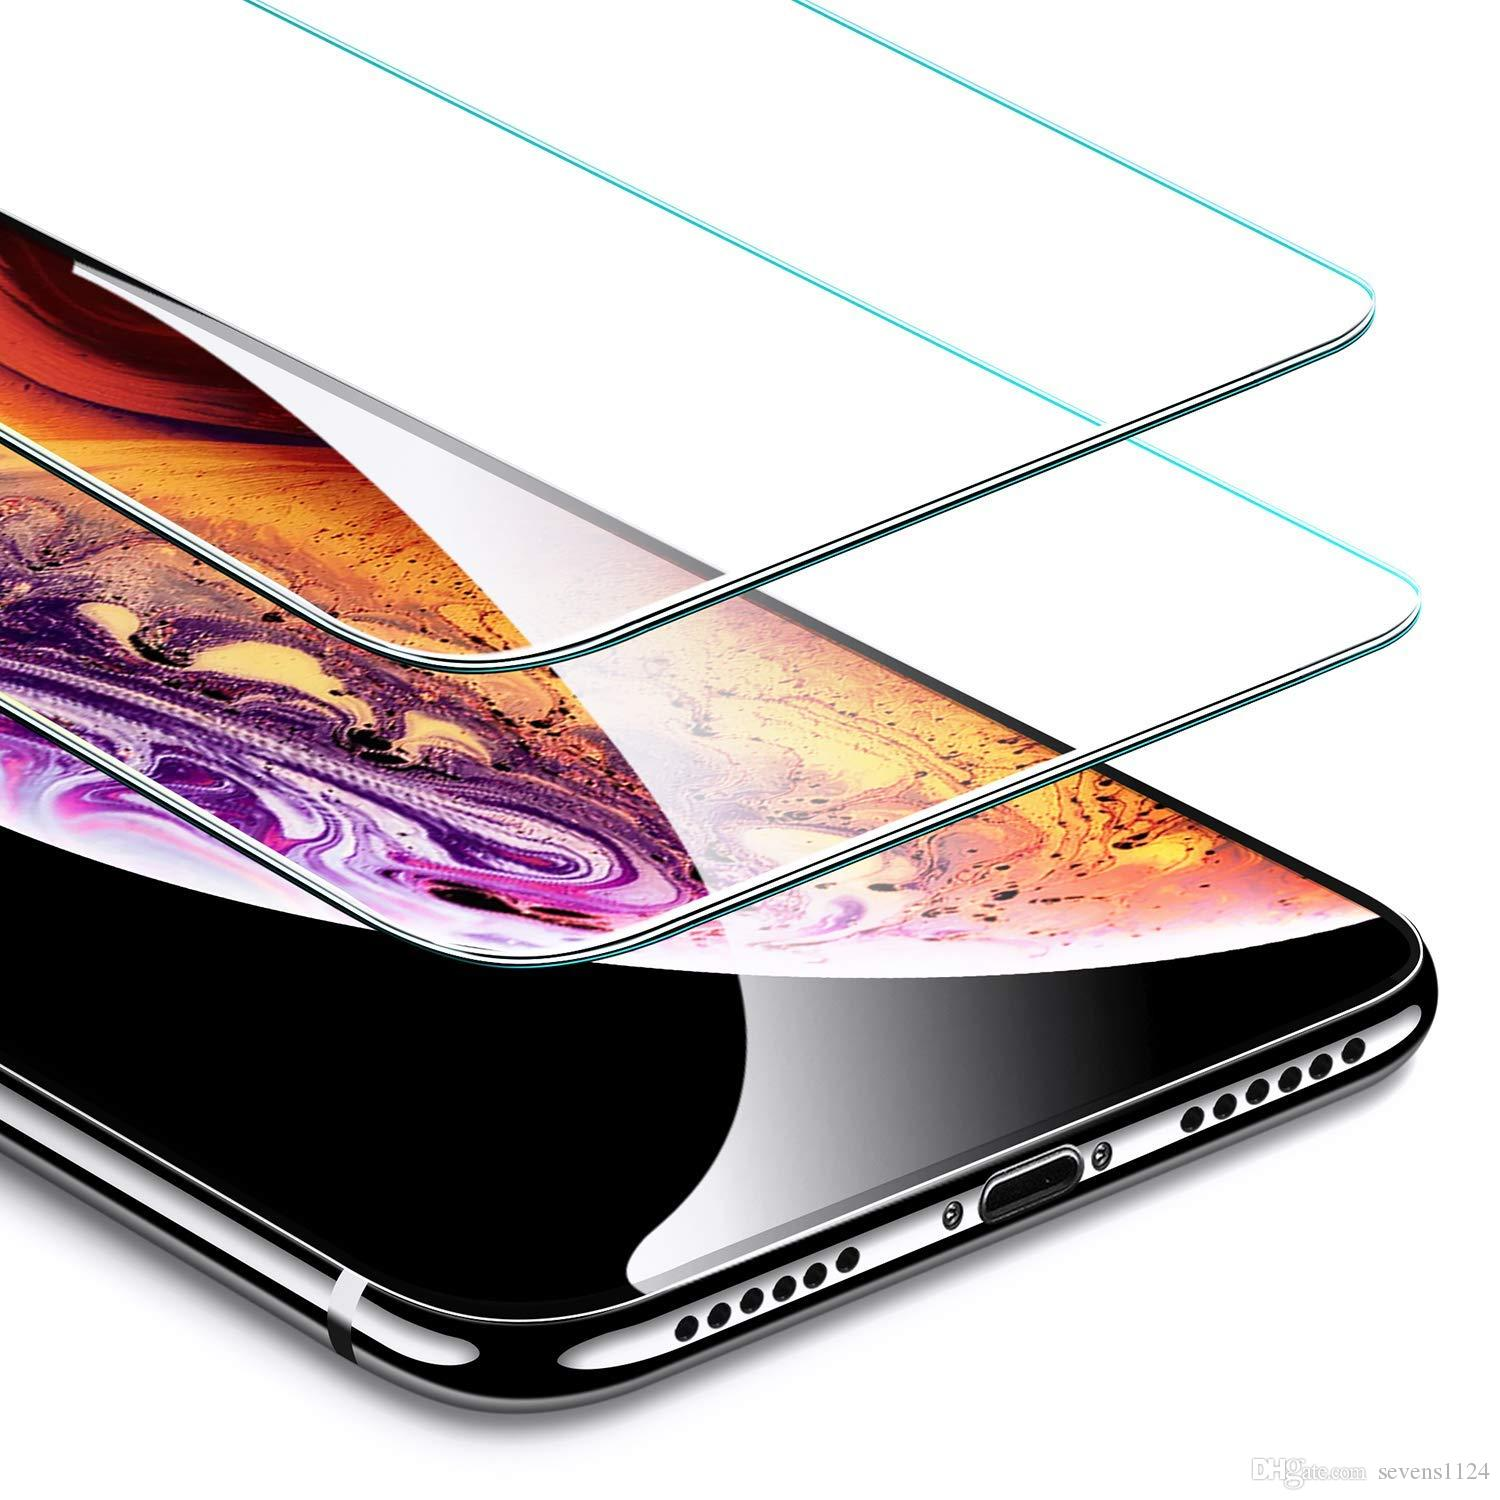 S Mart Tempered Glass Screen Protector Cover Flim for New Iphone X XS Max XR 9H 2 5D Rremium Quality Tempered Glass for Iphone Iphone Screen Protector